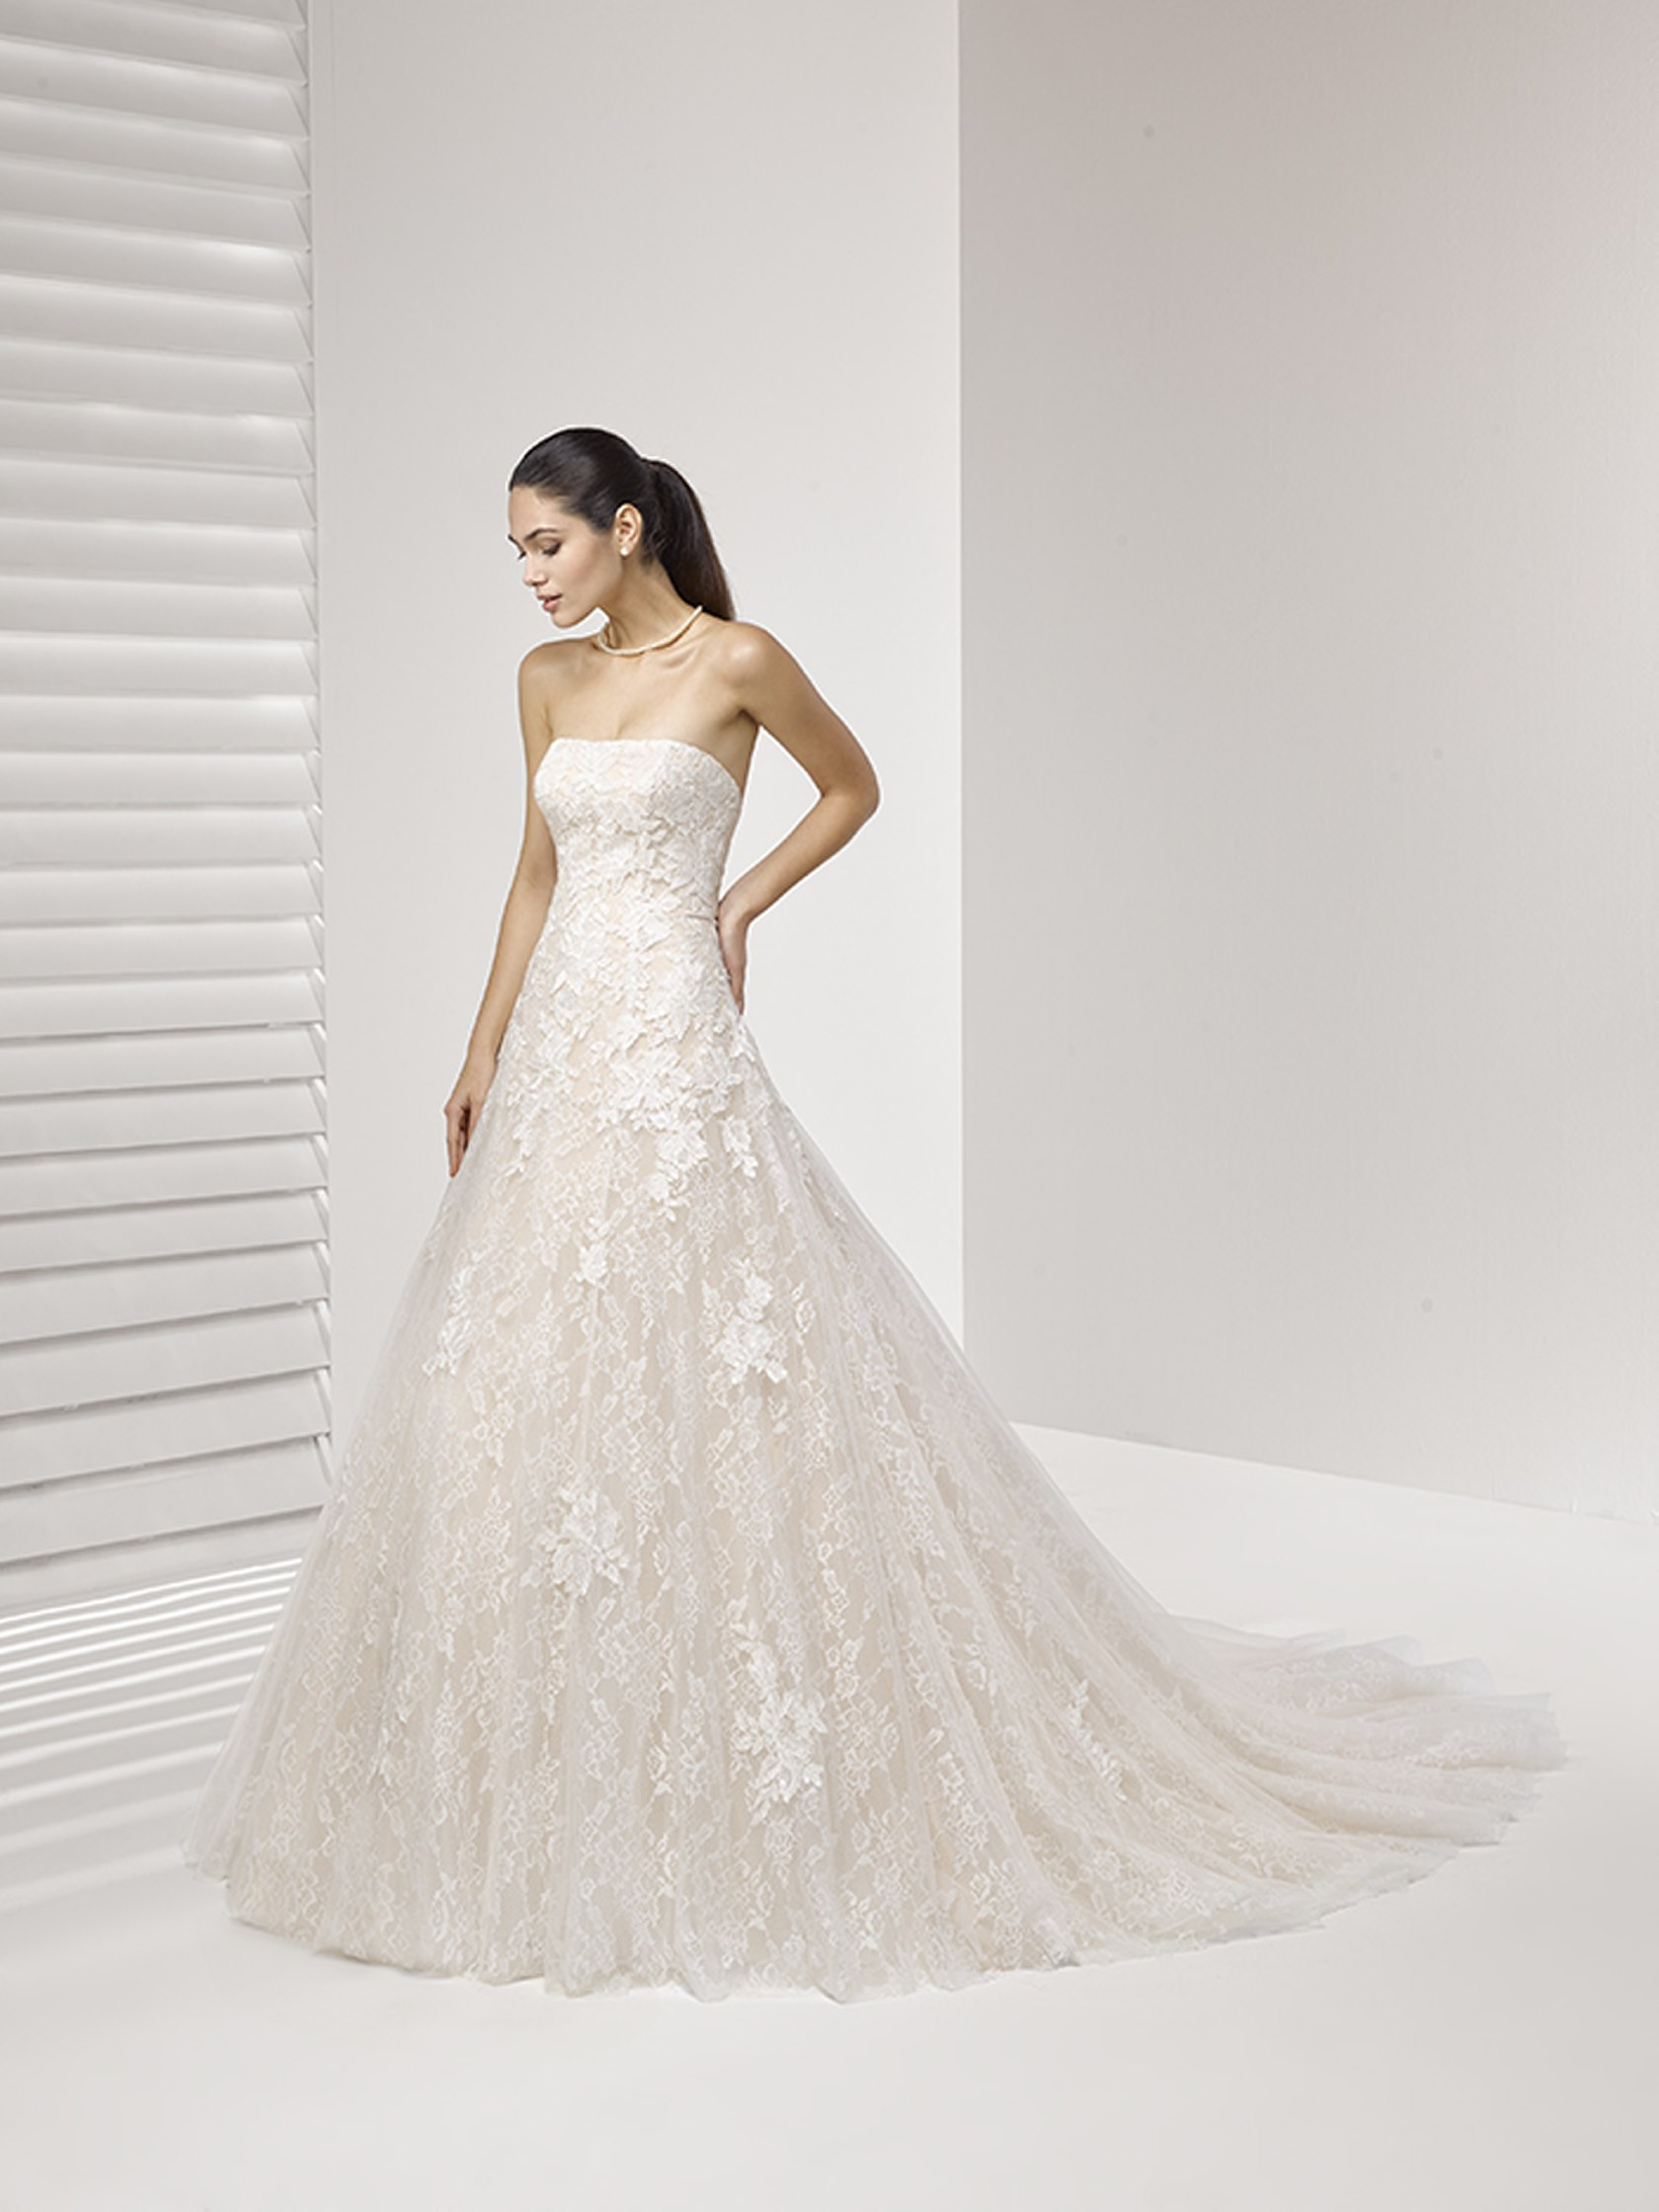 new products 6659d 7607a Abito Sposa AXEL · Rosa Clarà 2018 · Temptation's Gallery